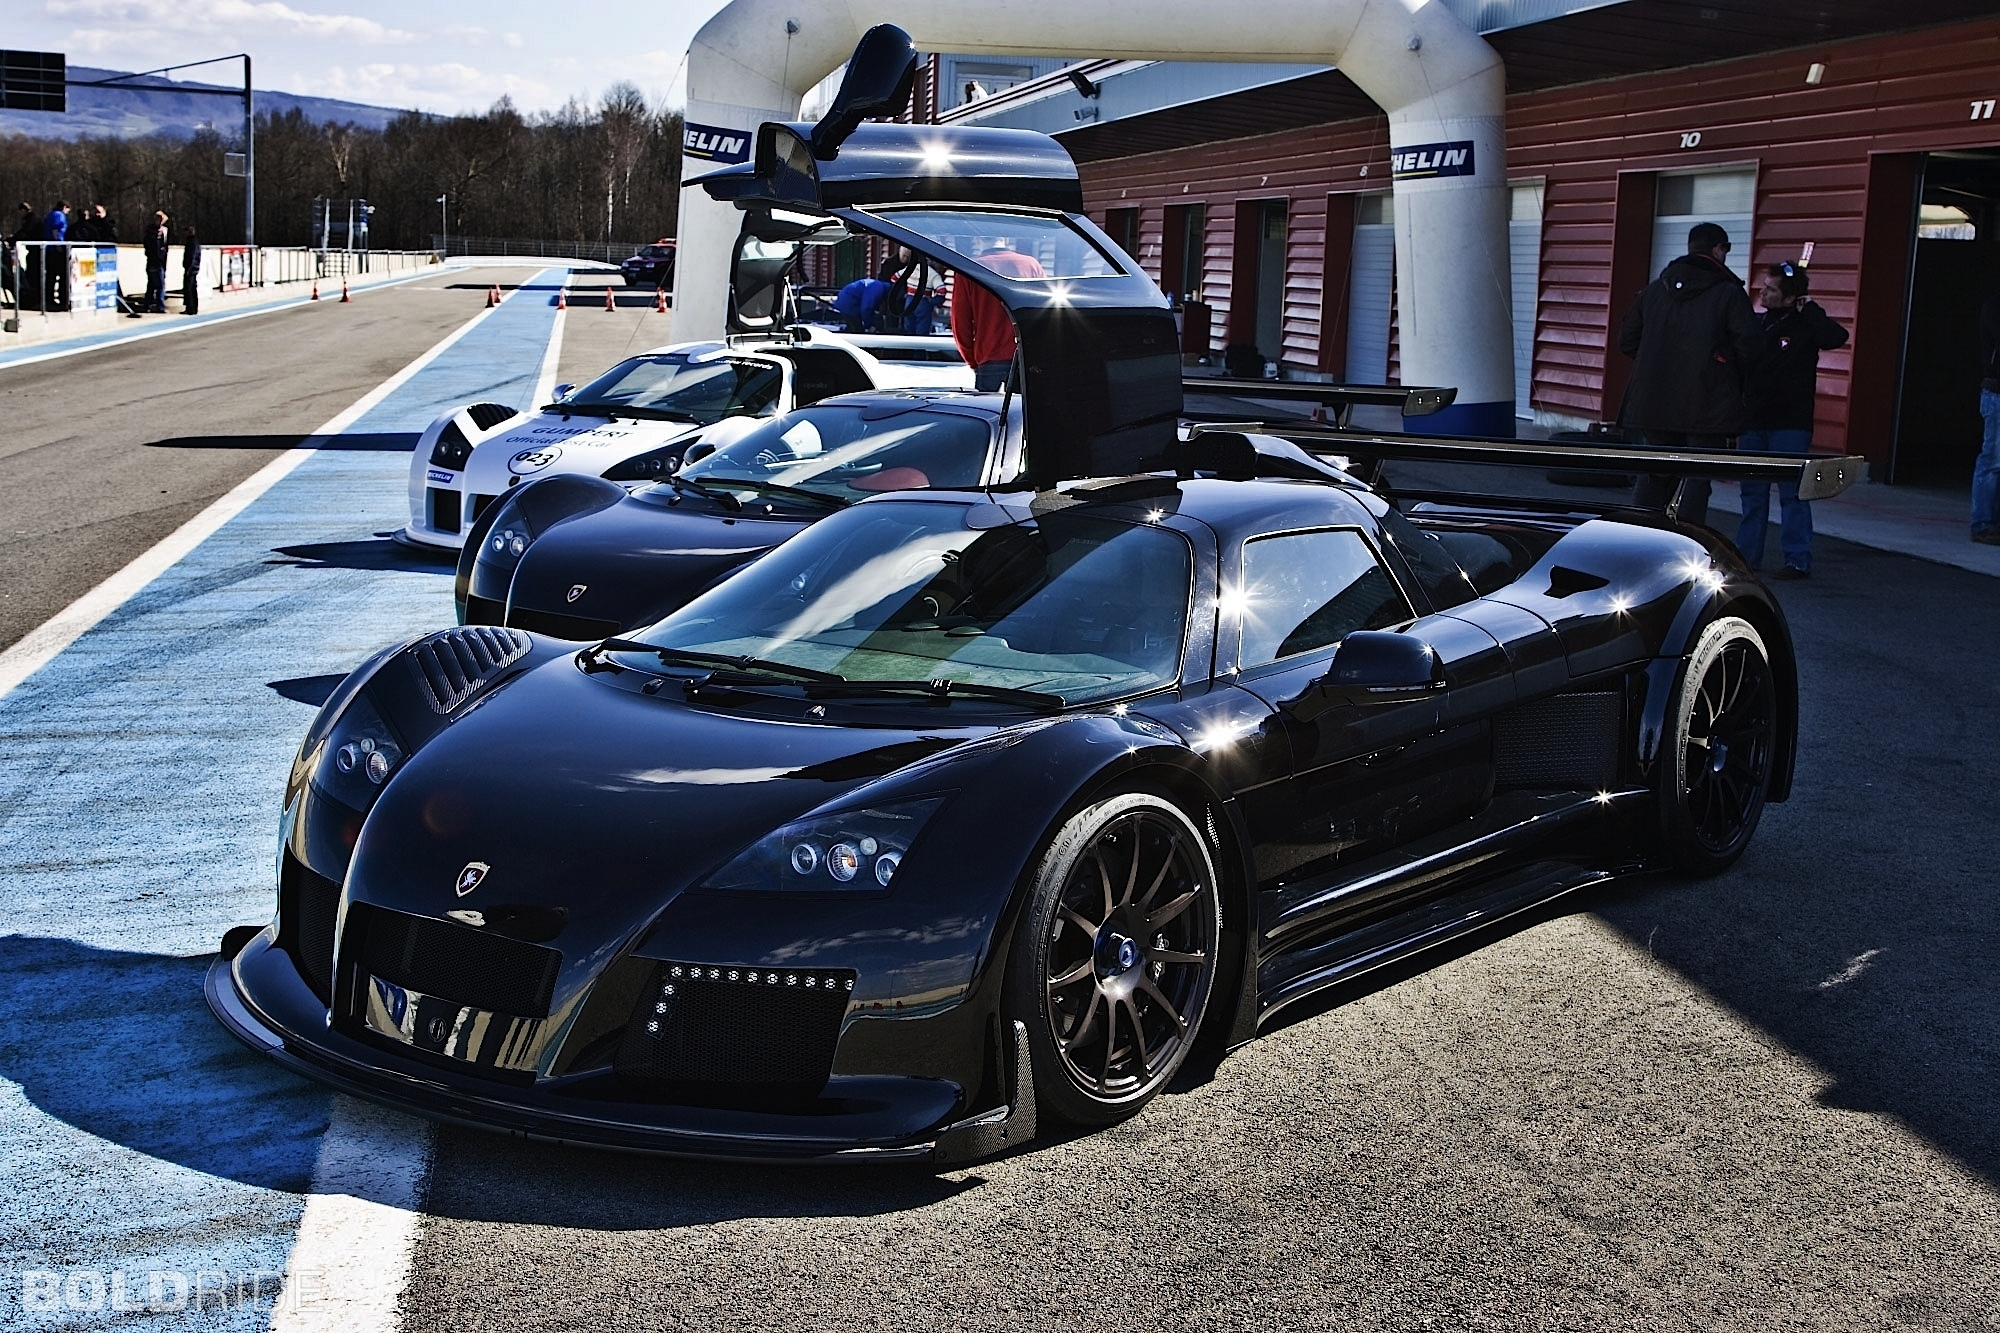 2010 Gumpert Apollo Sport 2000 x 1333